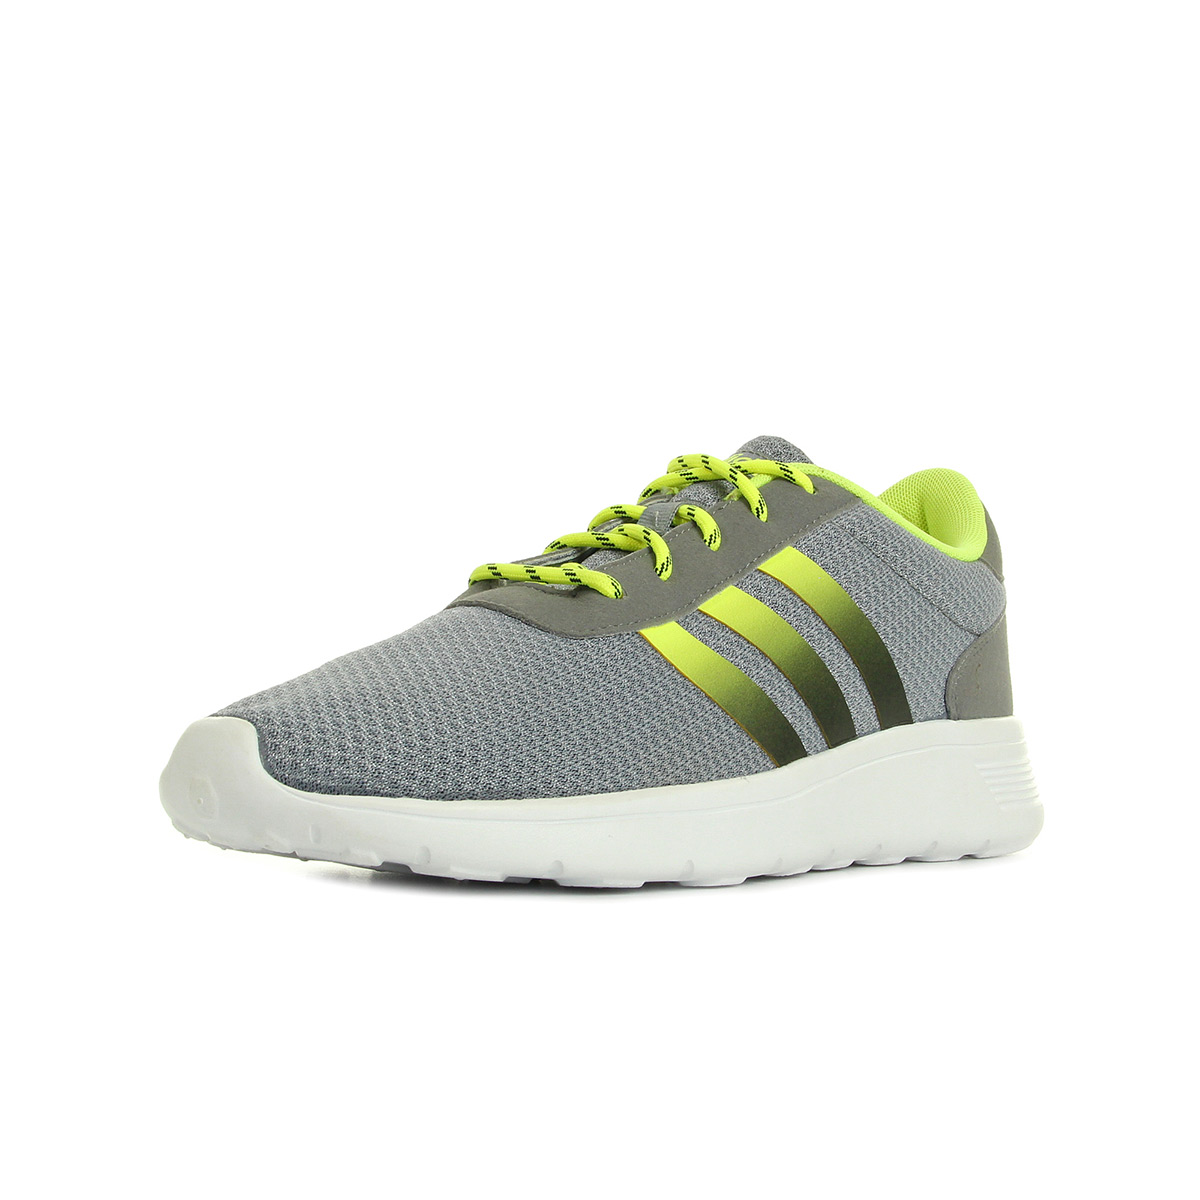 Chaussures Baskets adidas Neo homme Lite Racer taille Gris Grise Textile Lacets